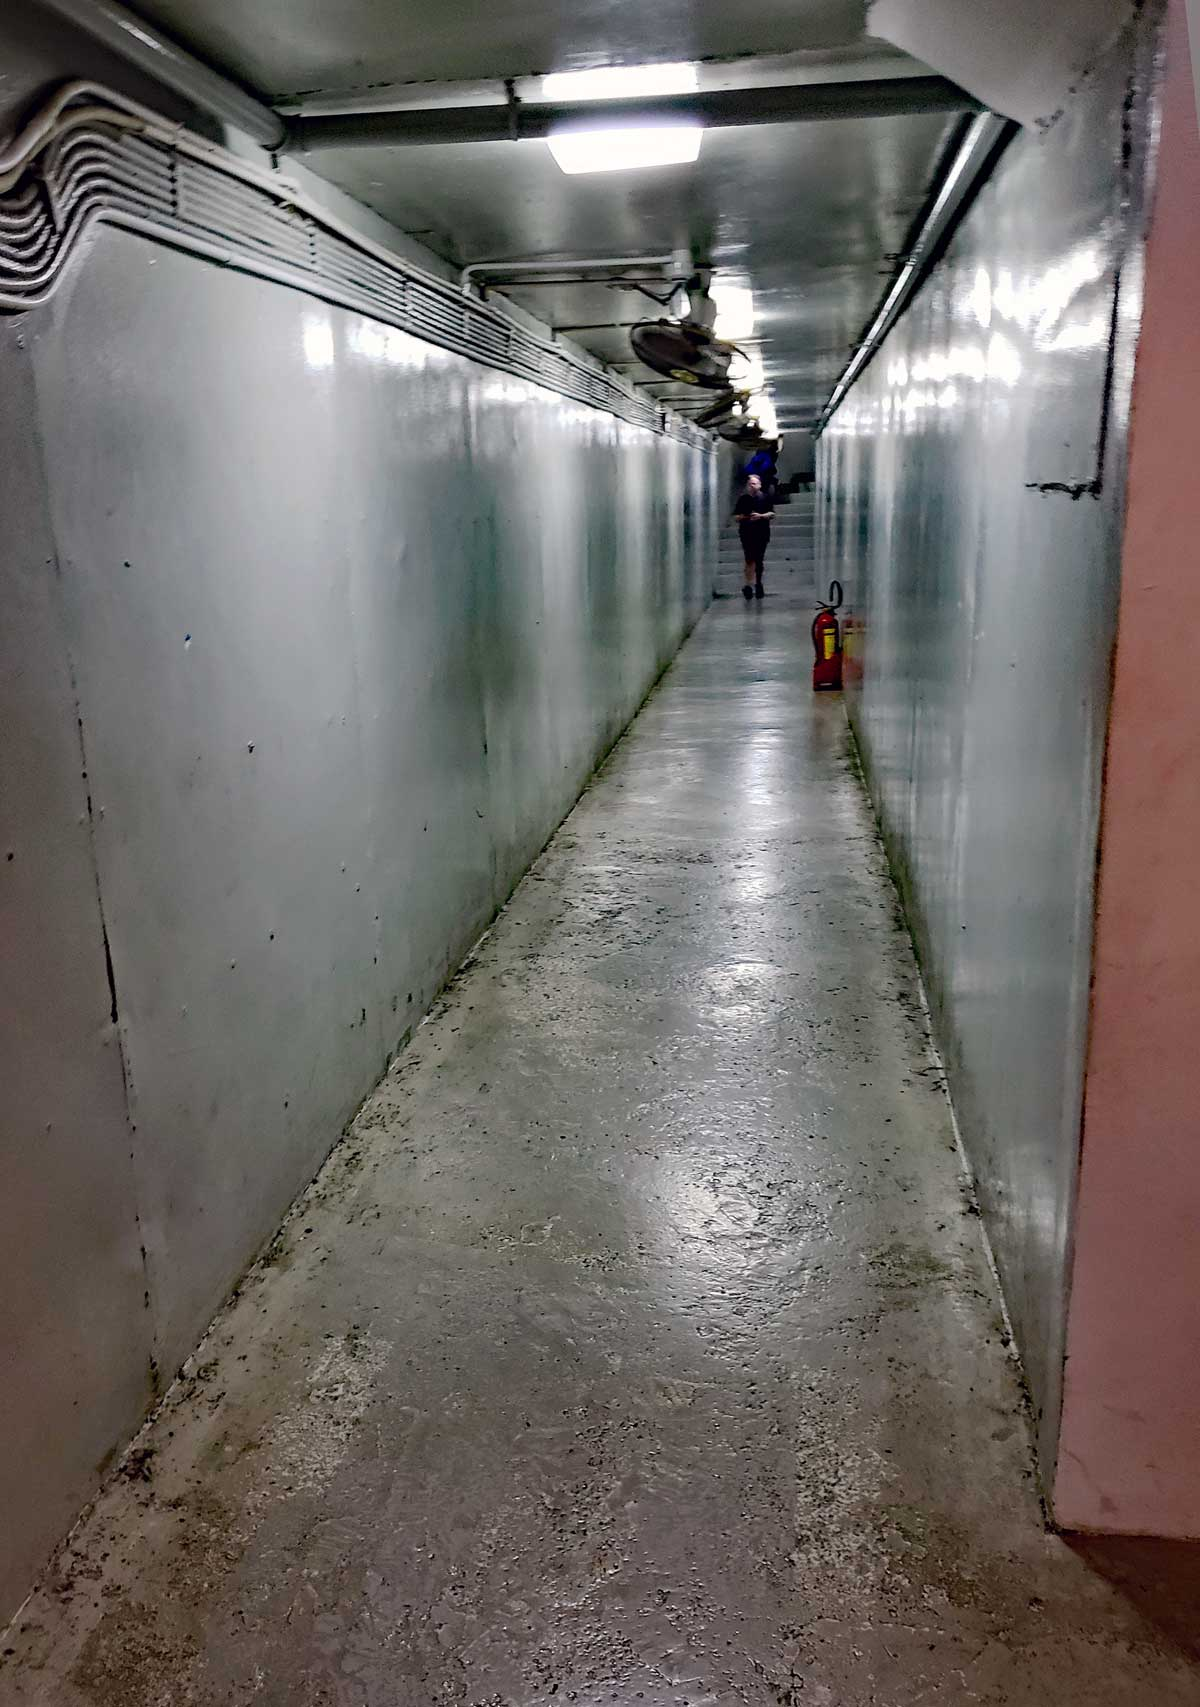 Long corridors are running the length of the Palace and numerous offices, communication rooms and bunk rooms are located along these corridors.